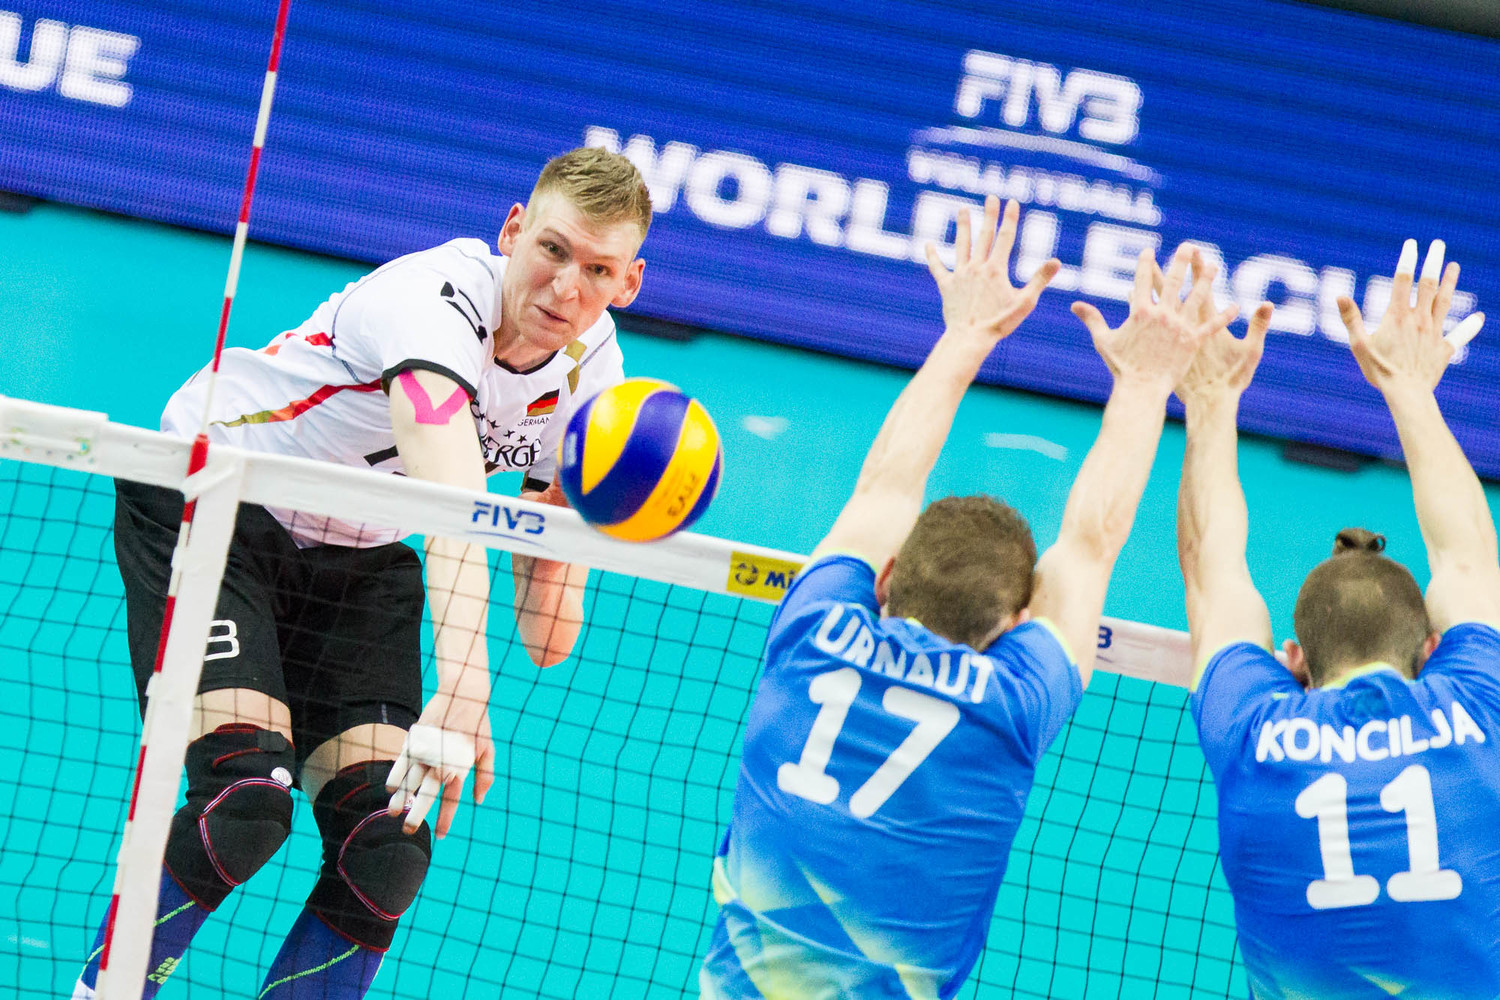 Angriff / attack Simon Hirsch (13 Deutschland/Germany); FIVB Volleyball World League Group 3 Finals, fraport Arena, Frankfurt (Main) Germany, 20160702: 1st place match: Germany vs Slovenia (Deutschland gegen Slowenien)